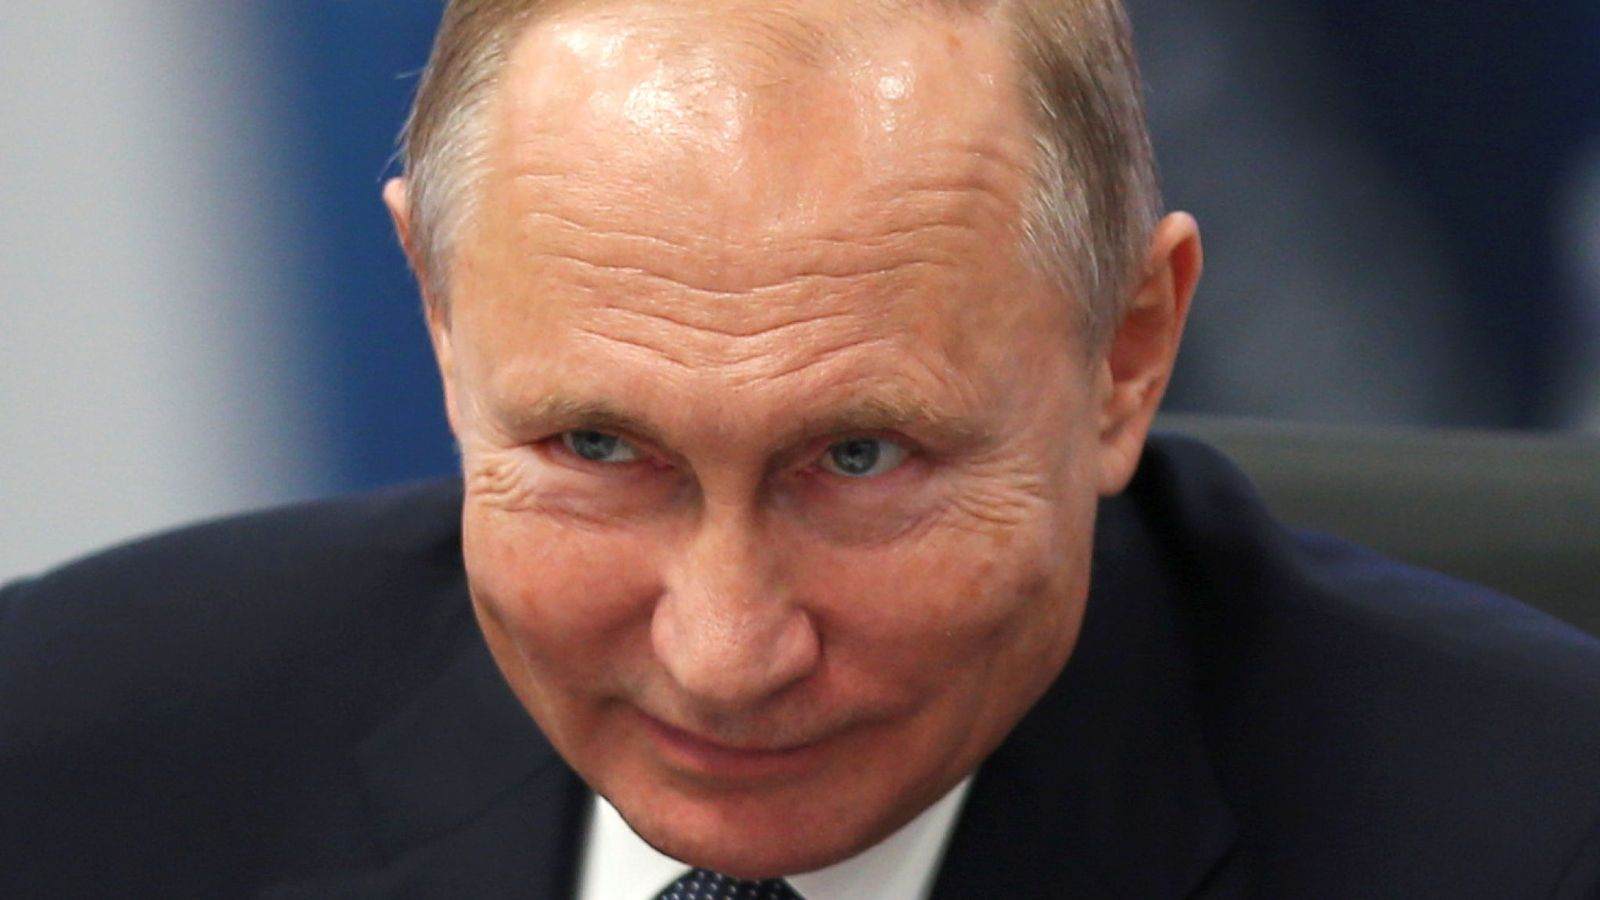 Don't expect Russia or US to budge in nuclear weapons row